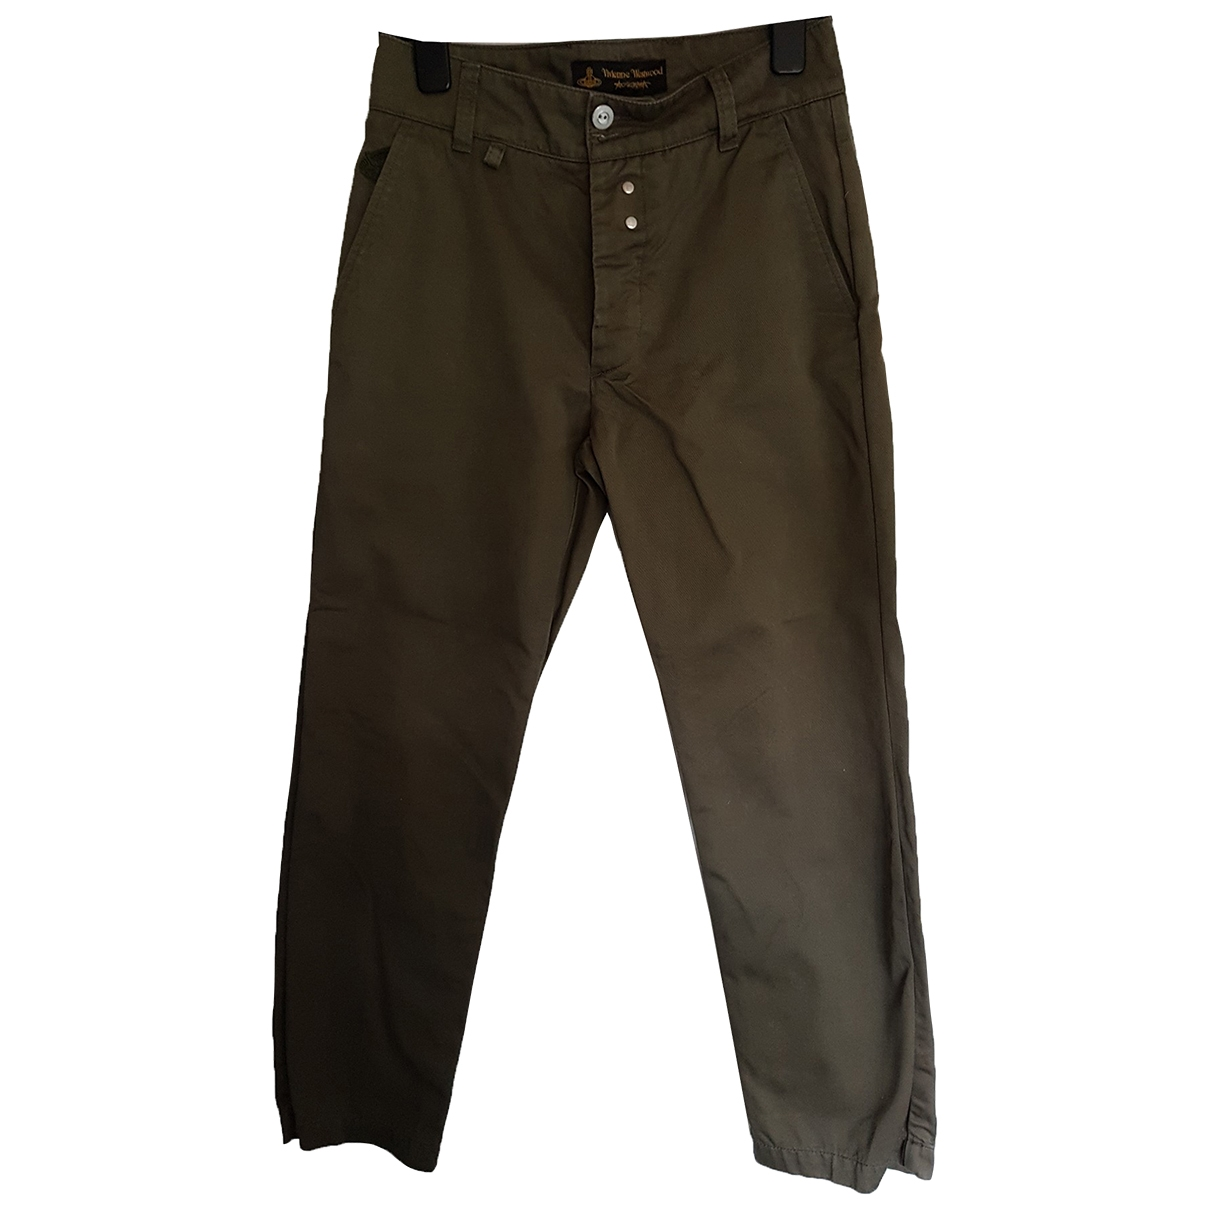 Vivienne Westwood Anglomania \N Khaki Cotton Trousers for Men S International